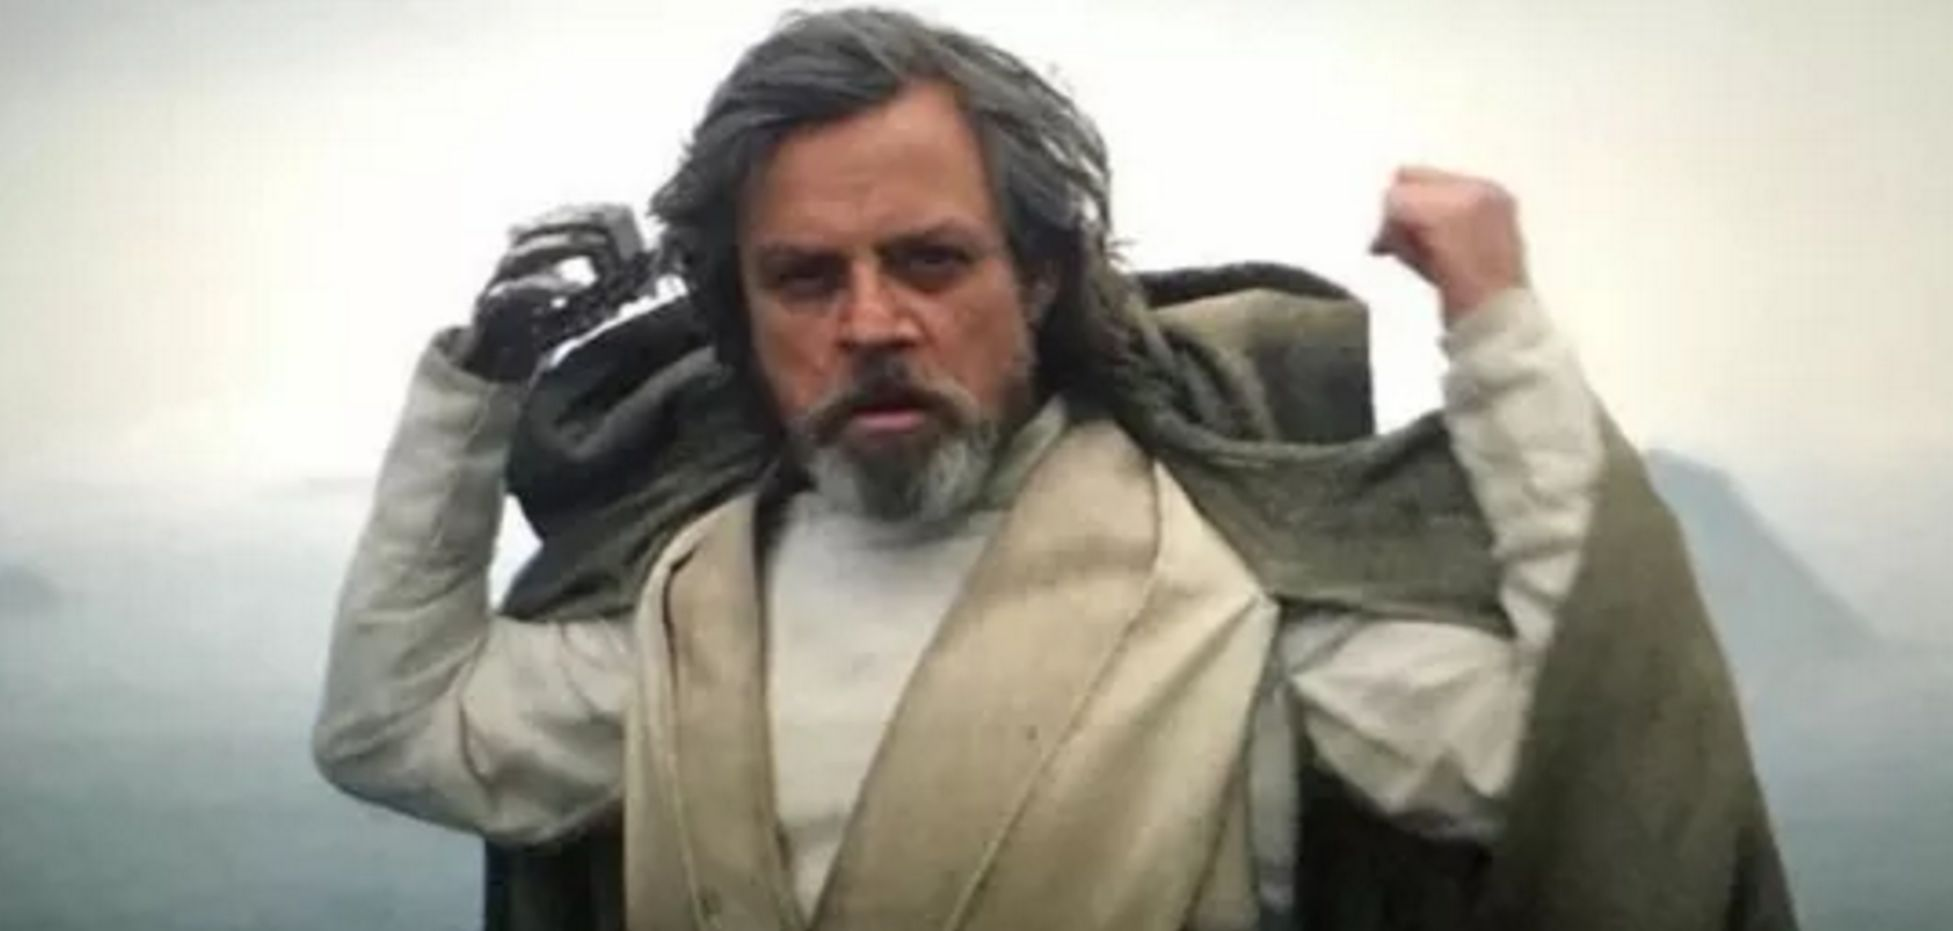 luke skywalker star wars 7